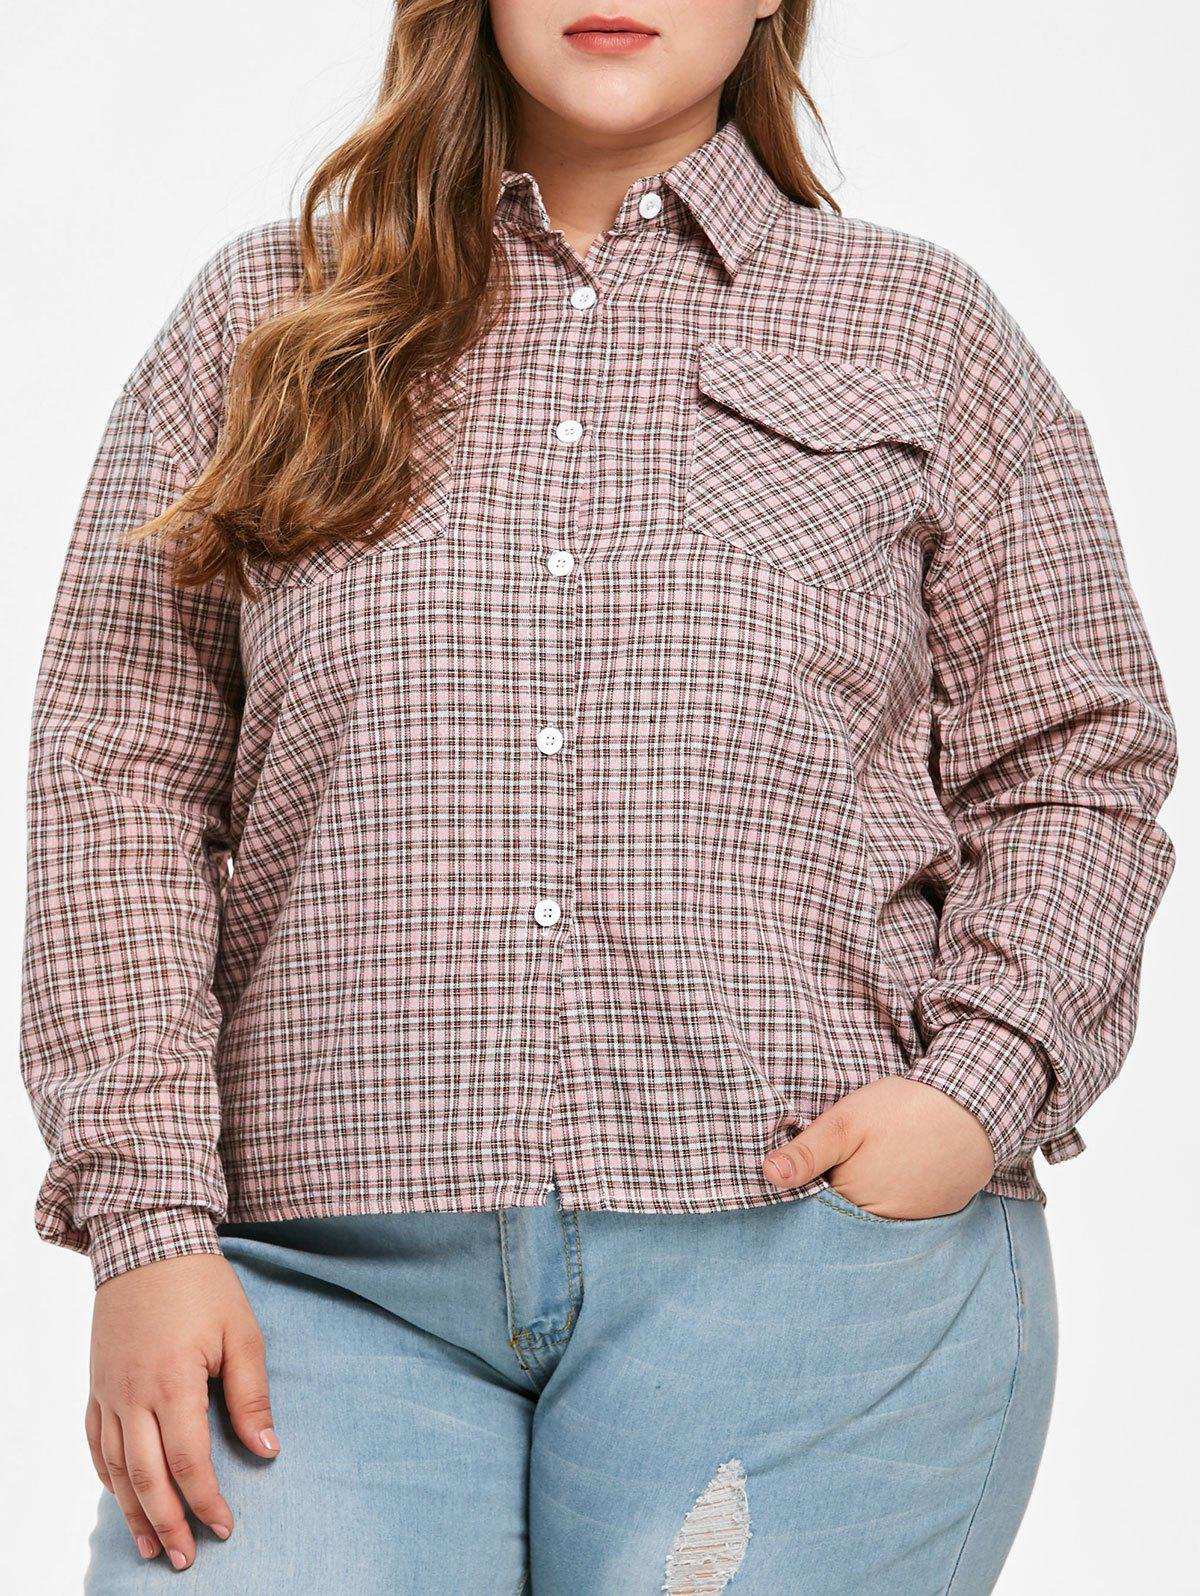 Plus Size Flounce Trim Gingham Shirt - multicolor 4X